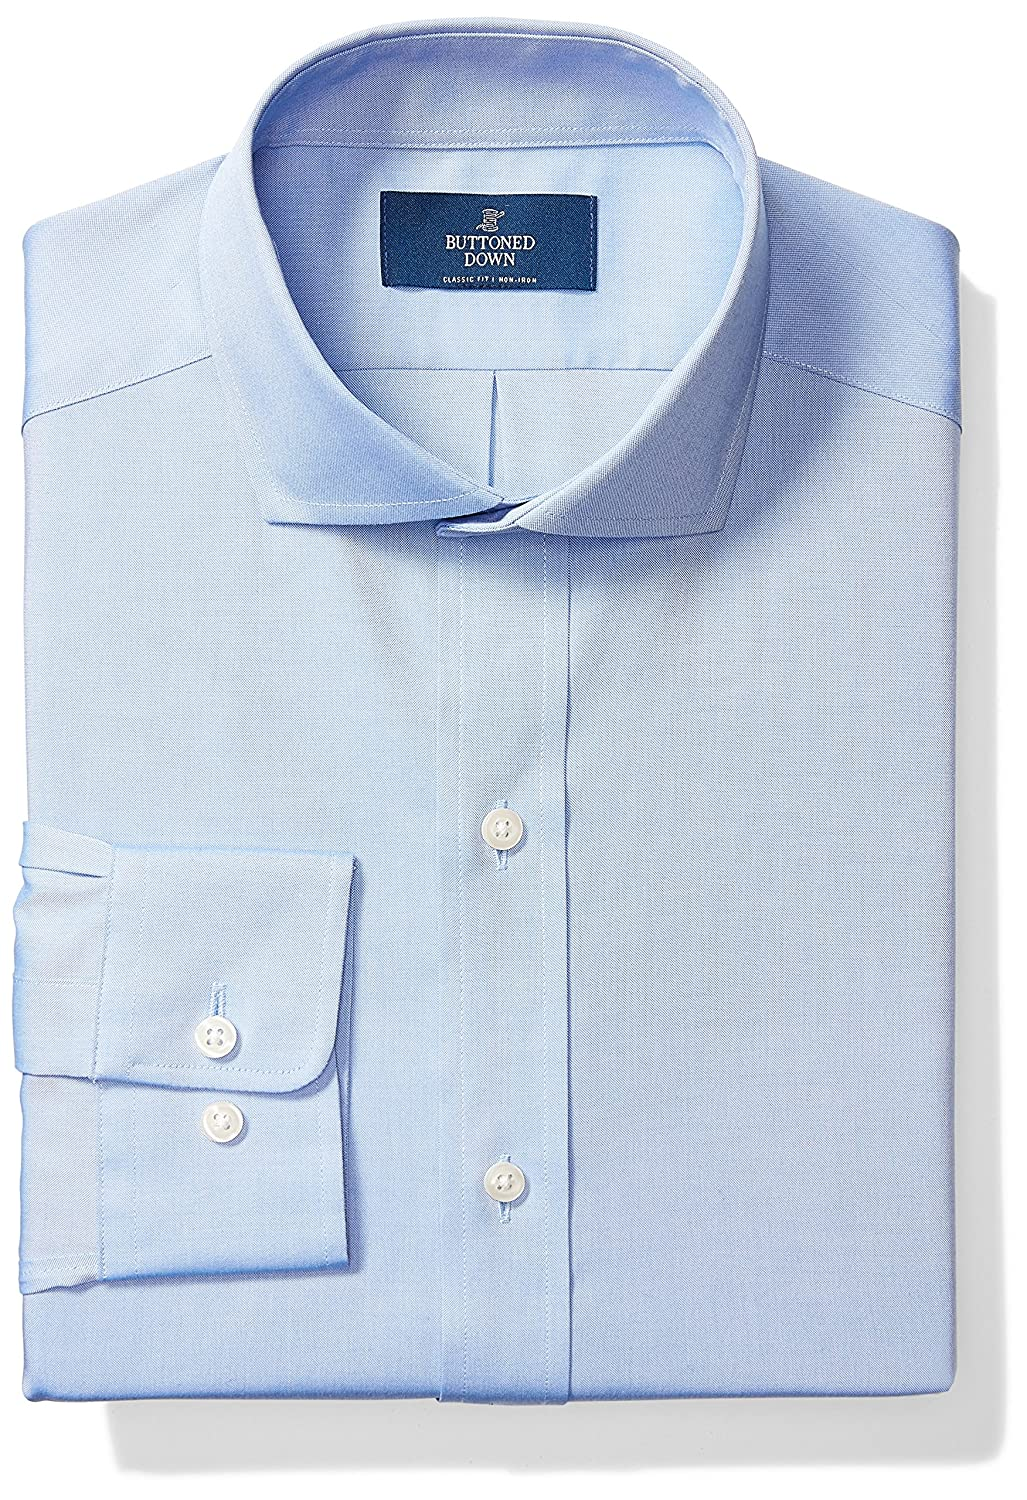 aaedd1b6ce3 Amazon.com  Amazon Brand - BUTTONED DOWN Men s Classic Fit Cutaway-Collar  Solid Pinpoint Non-Iron Dress Shirt  Clothing